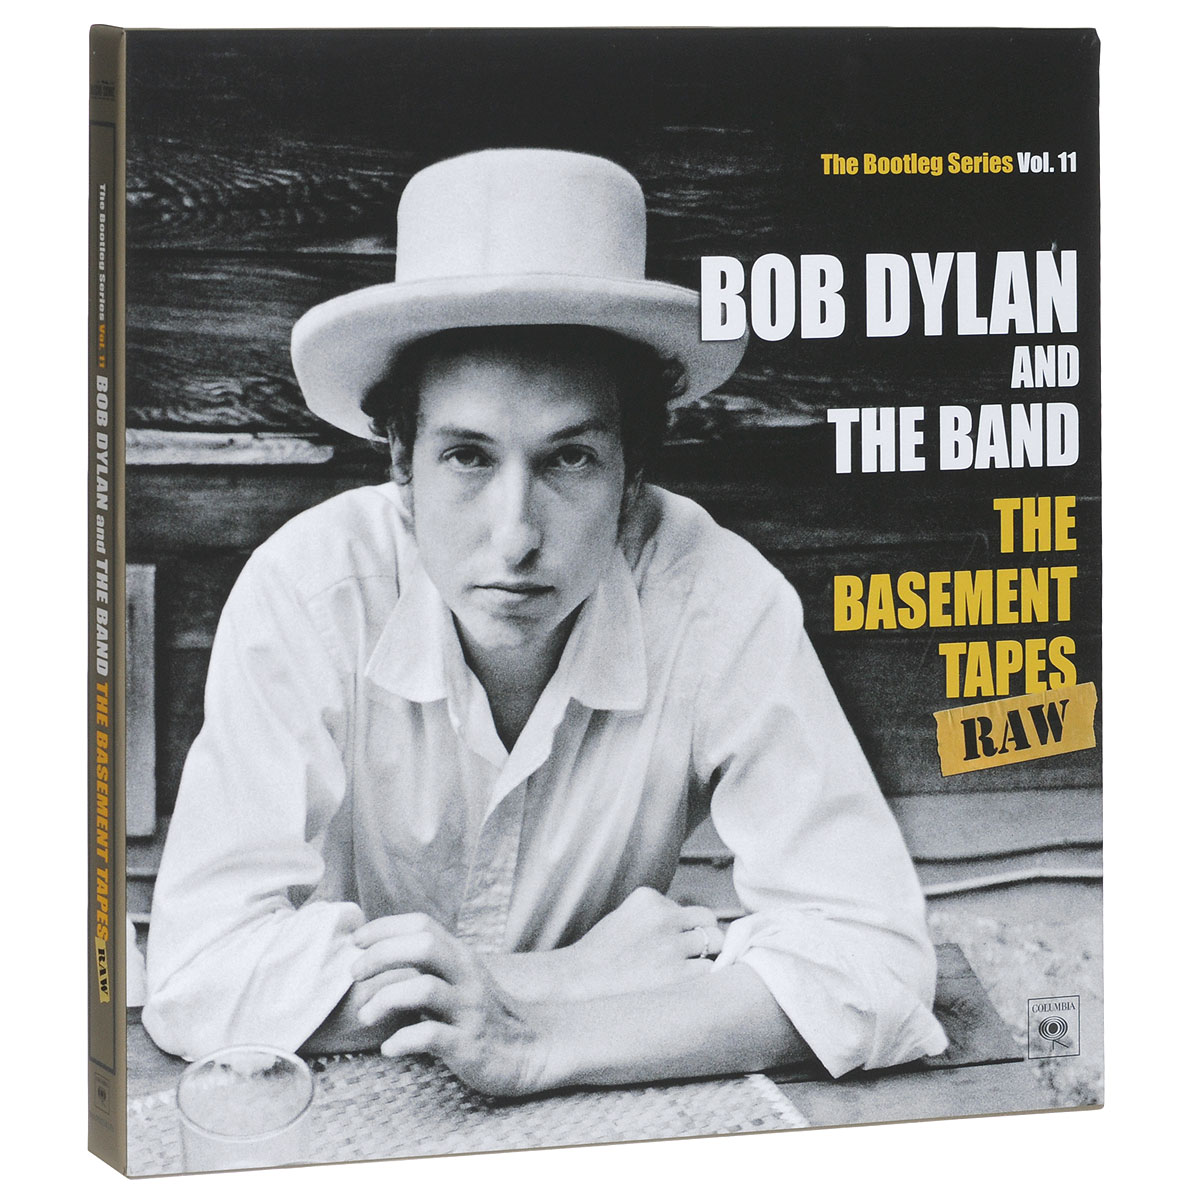 Bob Dylan And The Band Bob Dylan and The Band. The Bootleg Series Vol. 11: The Basement Tapes Complete. Special Deluxe (2 CD + 3 LP) bob dylan and the band bob dylan and the band the bootleg series vol 11 the basement tapes complete special deluxe 2 cd 3 lp